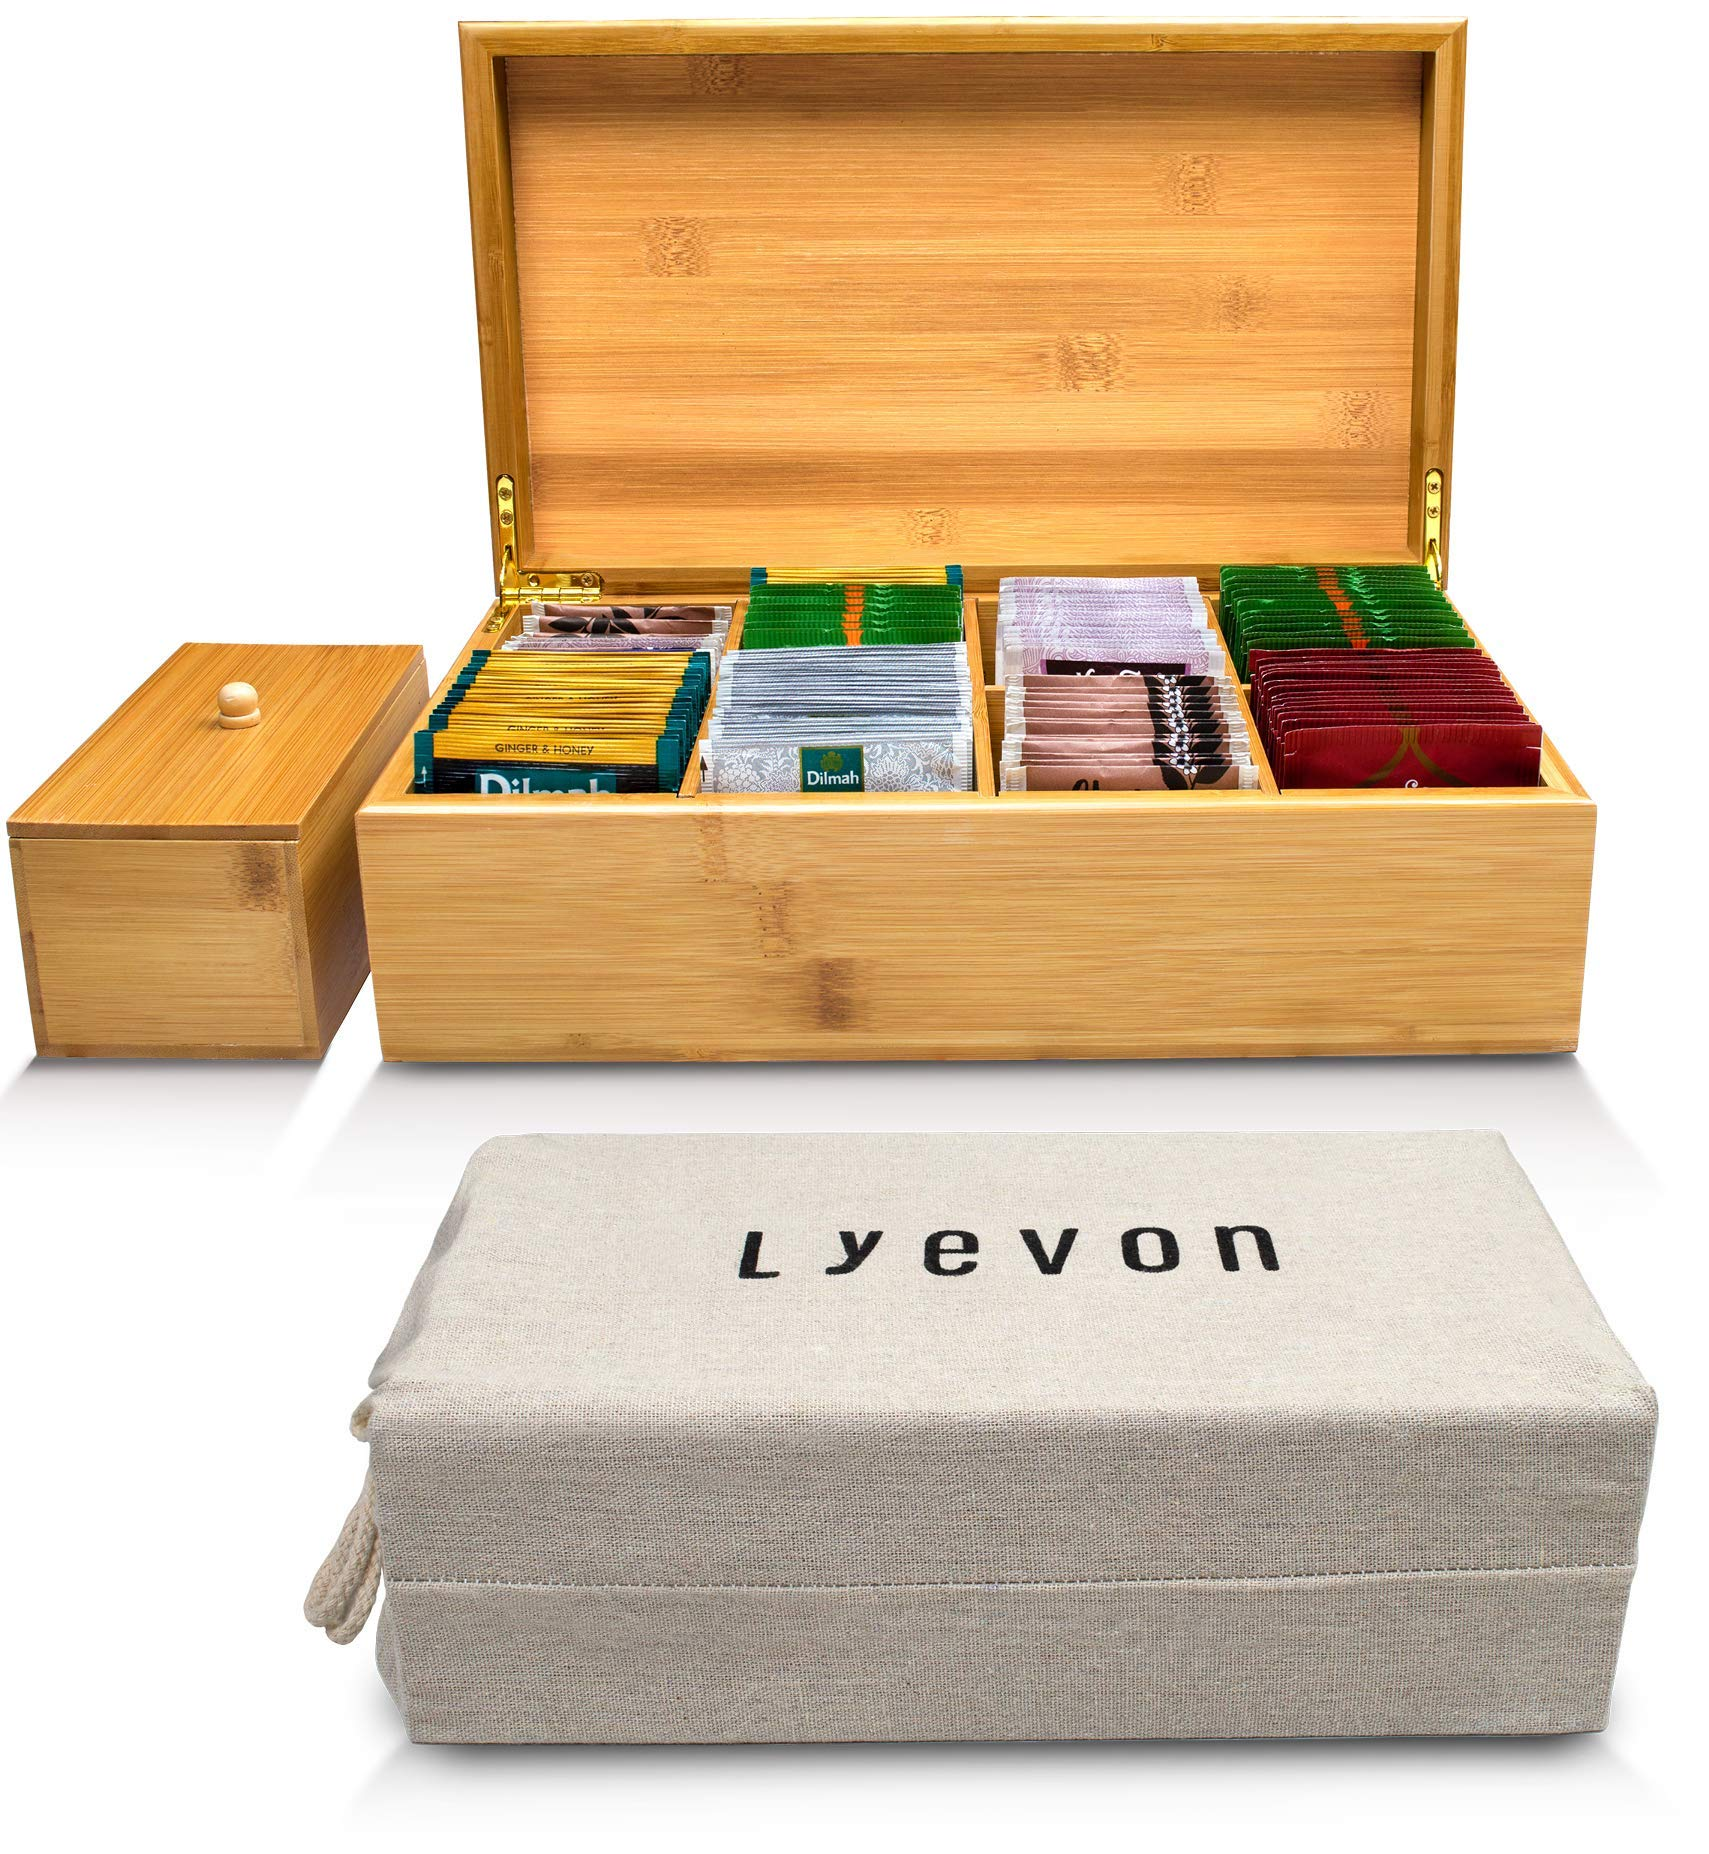 Lyevon Tea Storage Organizer Bamboo Chest Box with 8 Adjustable Compartments for Assorted Tea Bags or Spices -holds 125 Tea Bags by Lyevon